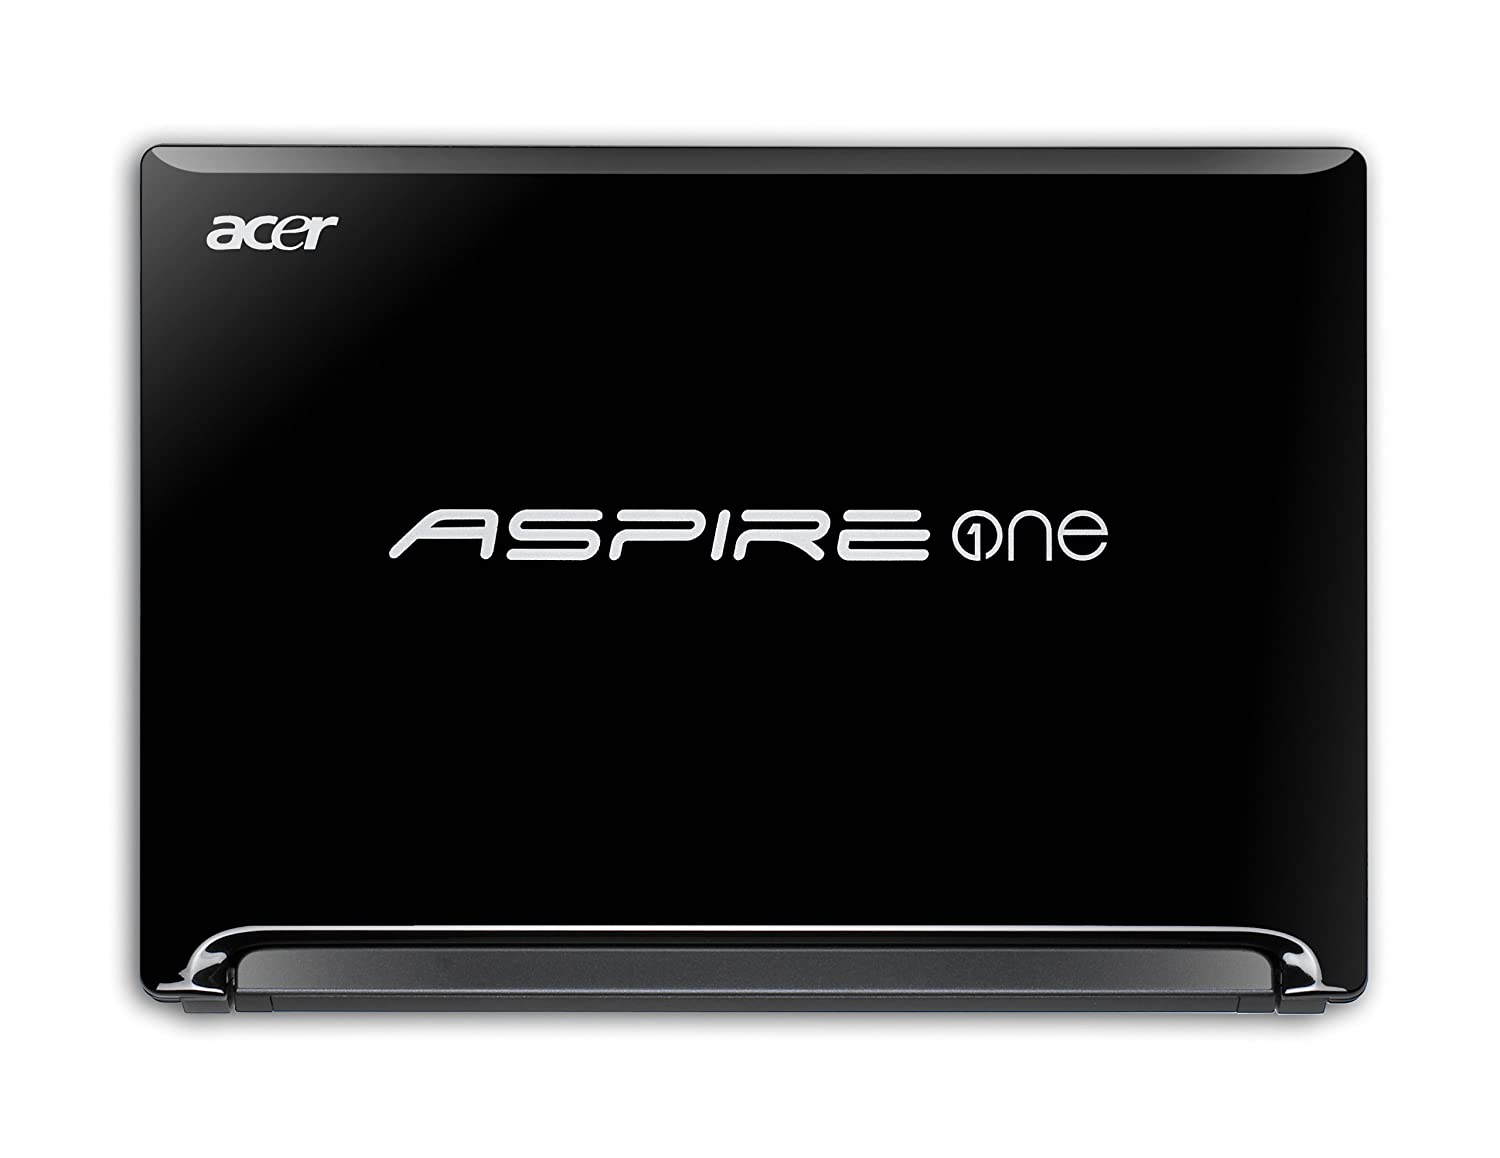 acer aspire one d255 reviews notebook summary rh notebooksummary blogspot com Acer Aspire One Hard Drive Removal Acer Aspire One Series Manual